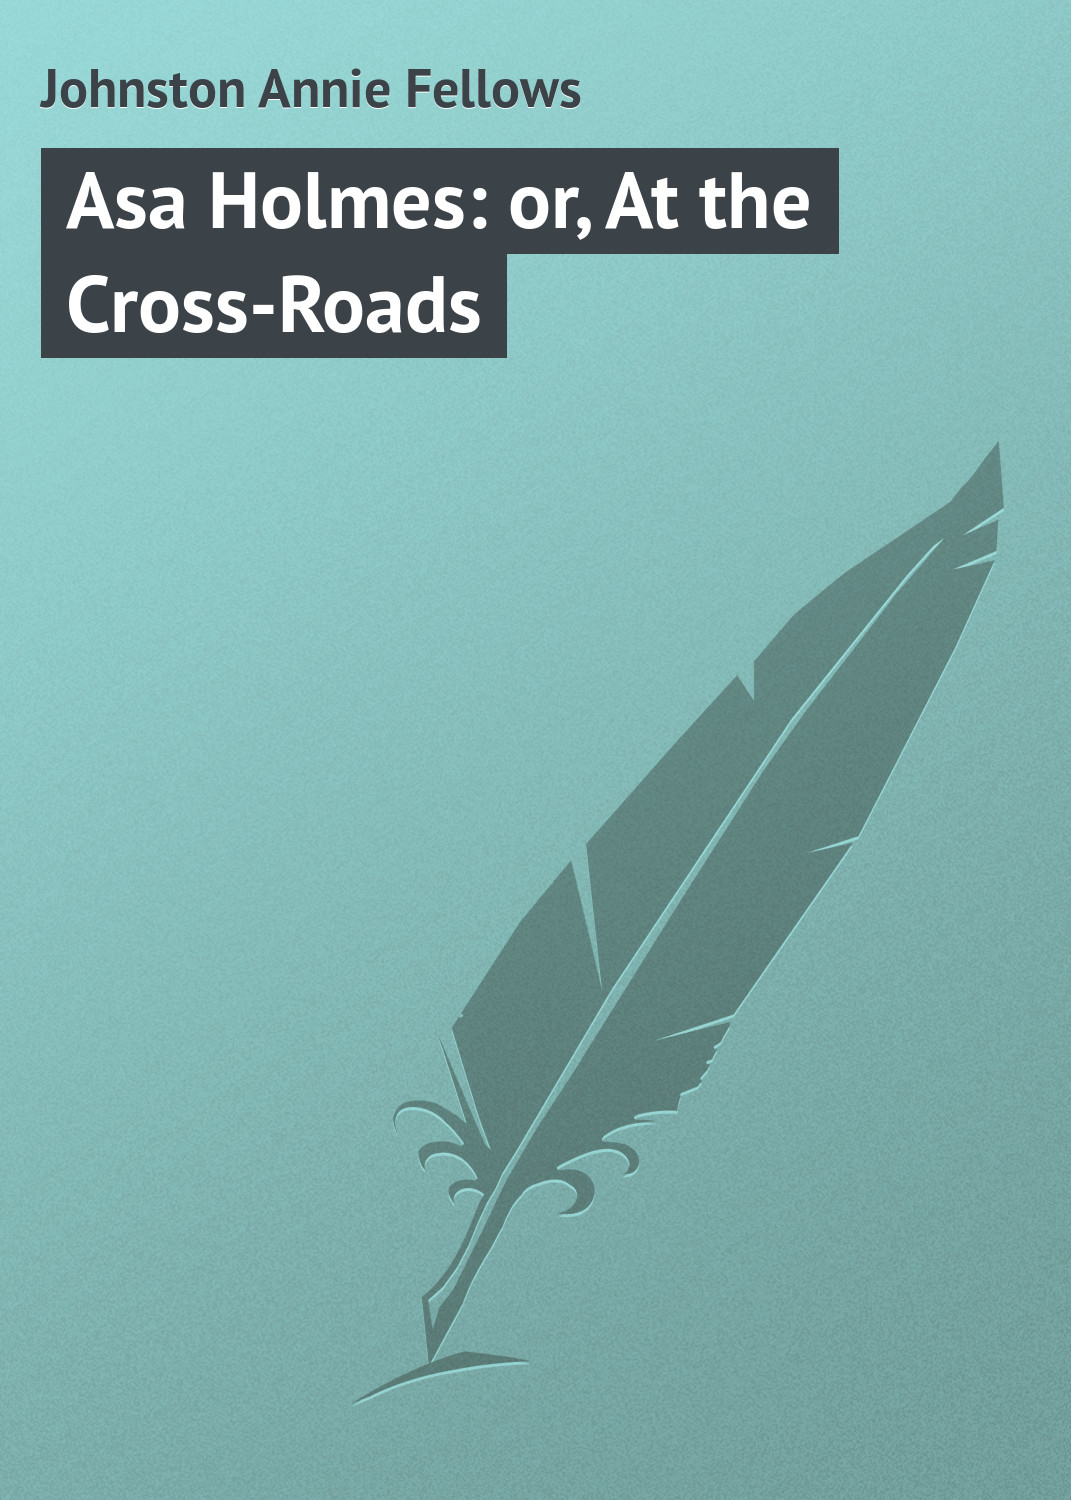 цена Johnston Annie Fellows Asa Holmes: or, At the Cross-Roads онлайн в 2017 году